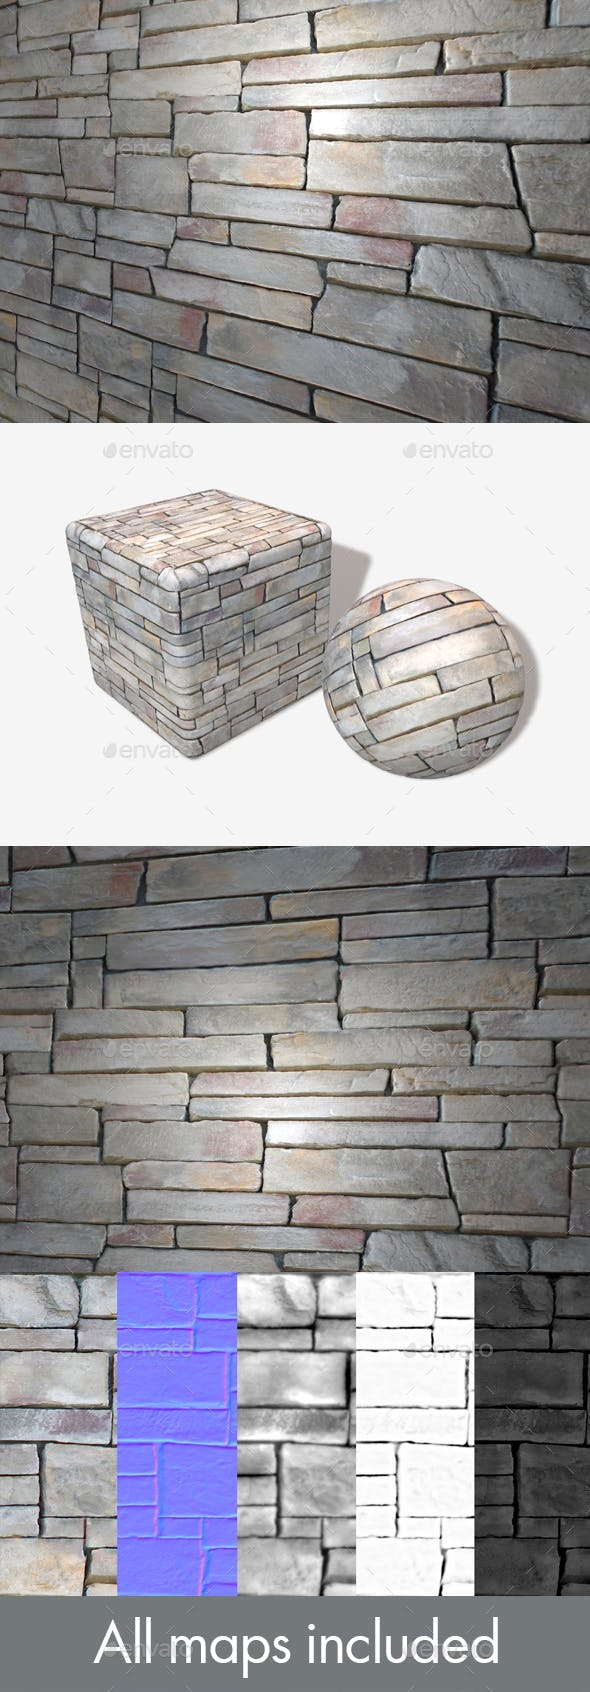 60's Style Rock Wall Seamless - 3DOcean Item for Sale